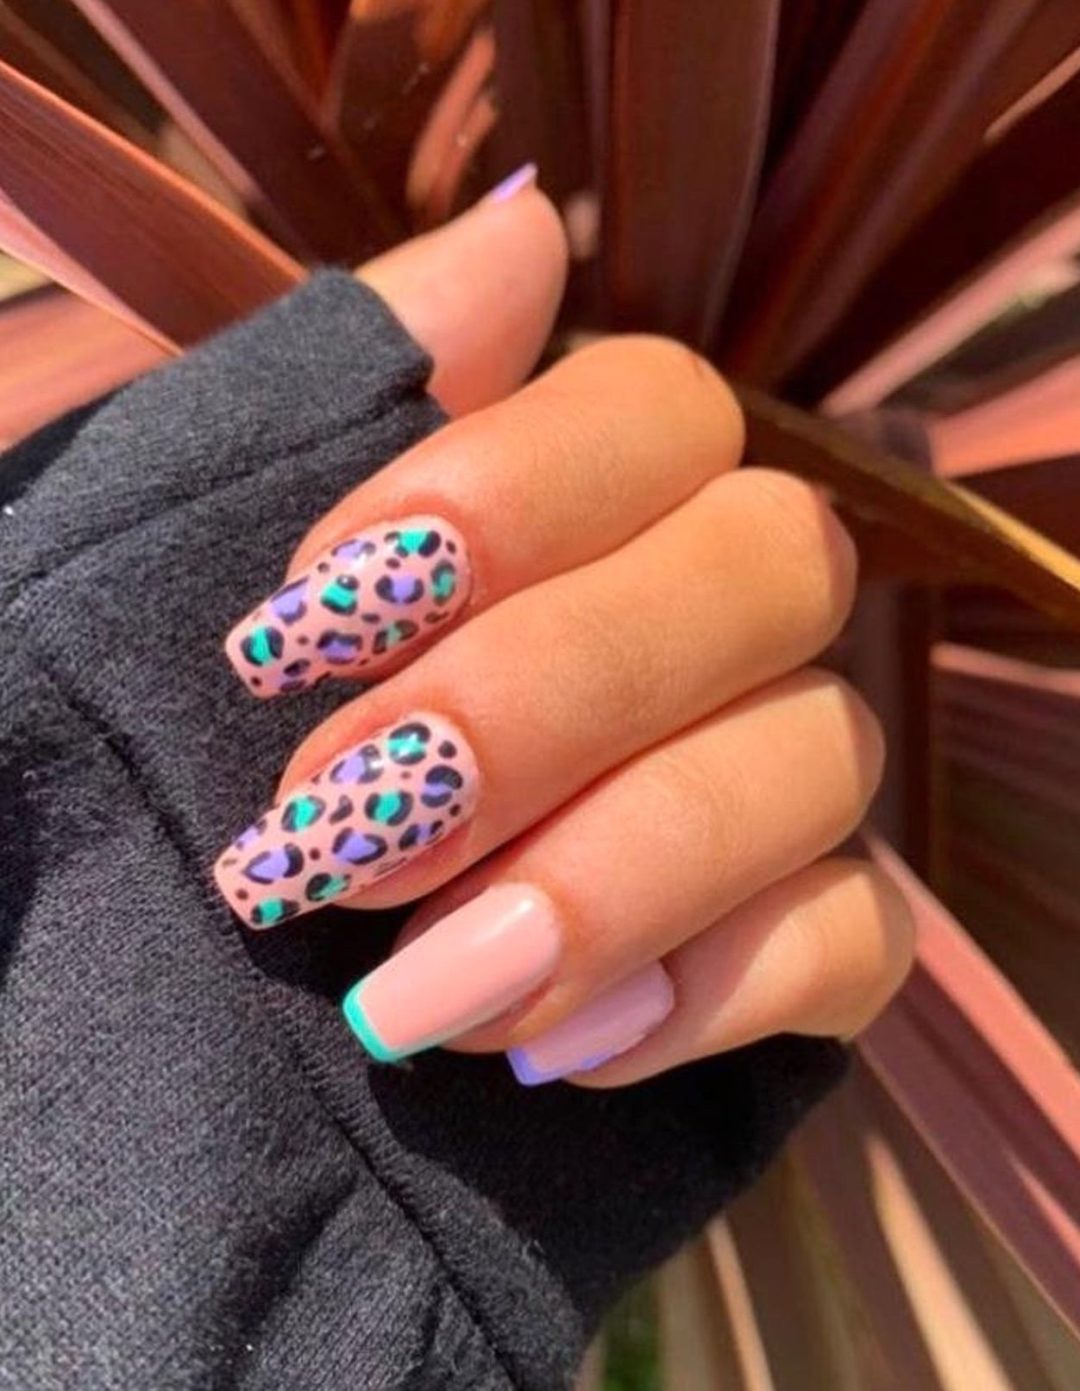 Pink, lavender and teal leopard nails